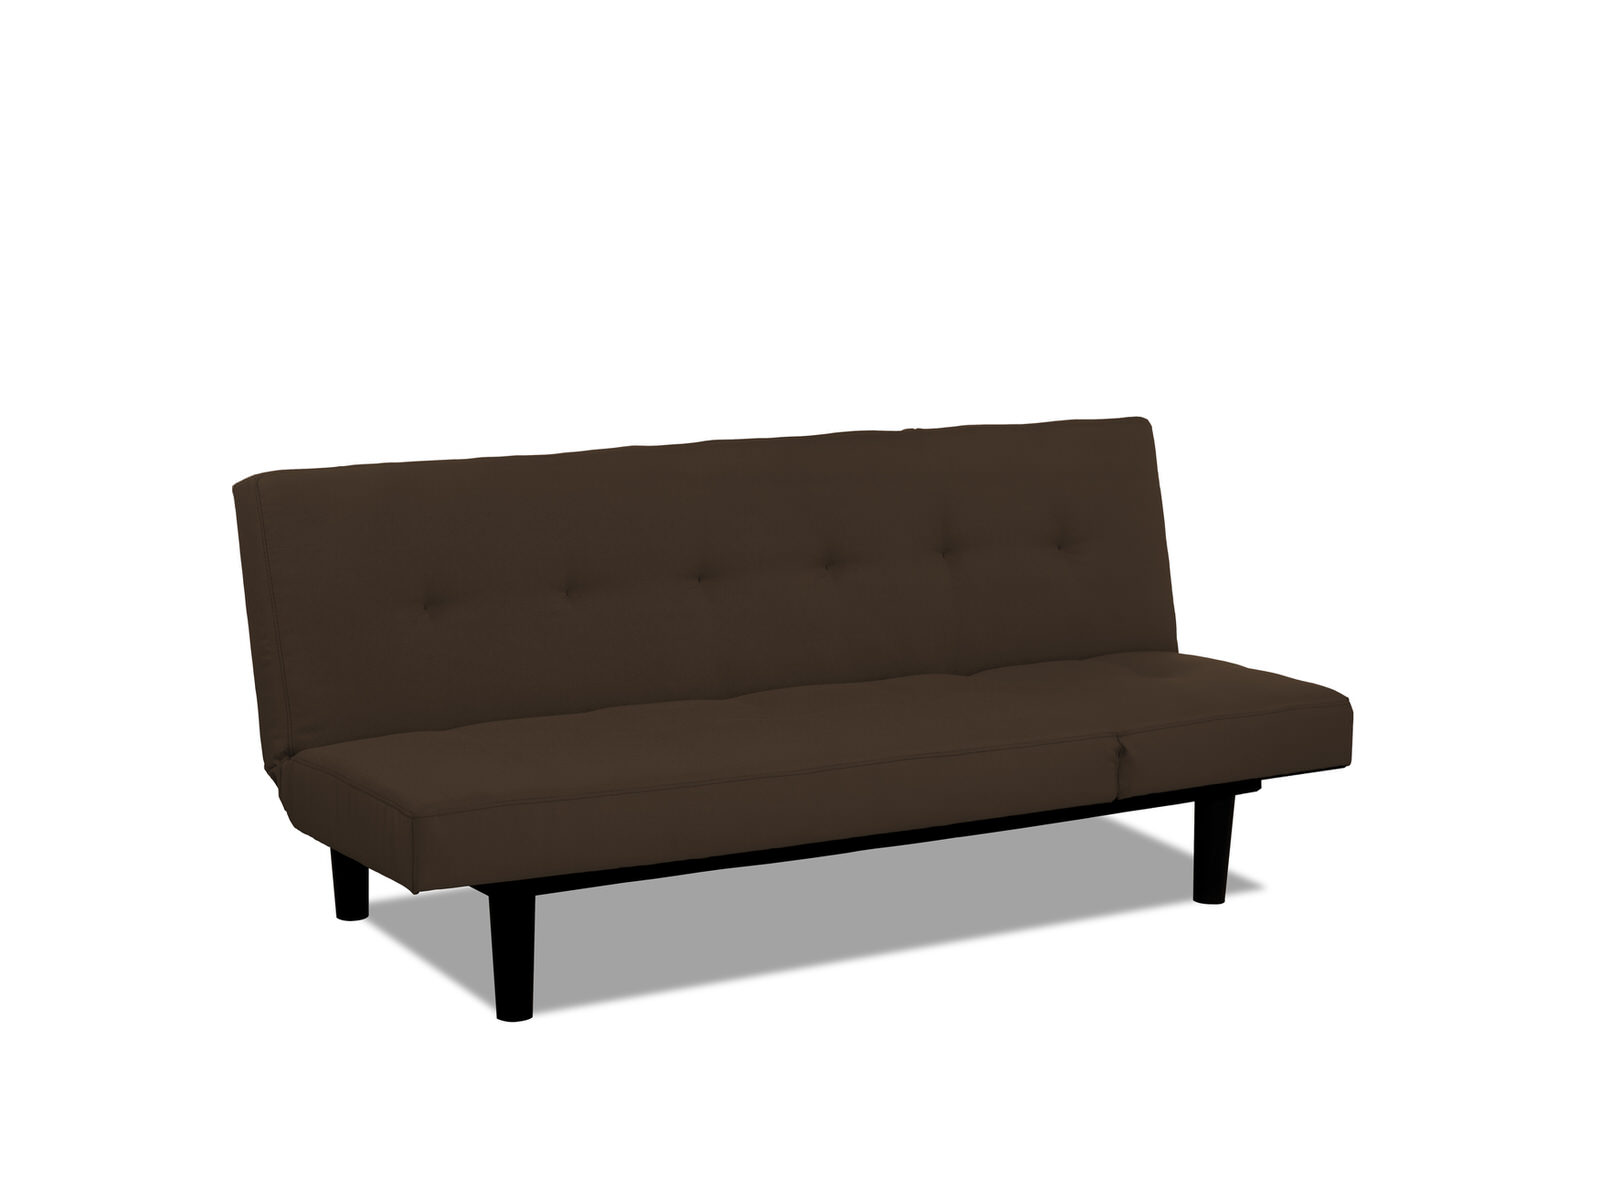 sofa bed lounger cushions for leather mini convertible brown by serta lifestyle